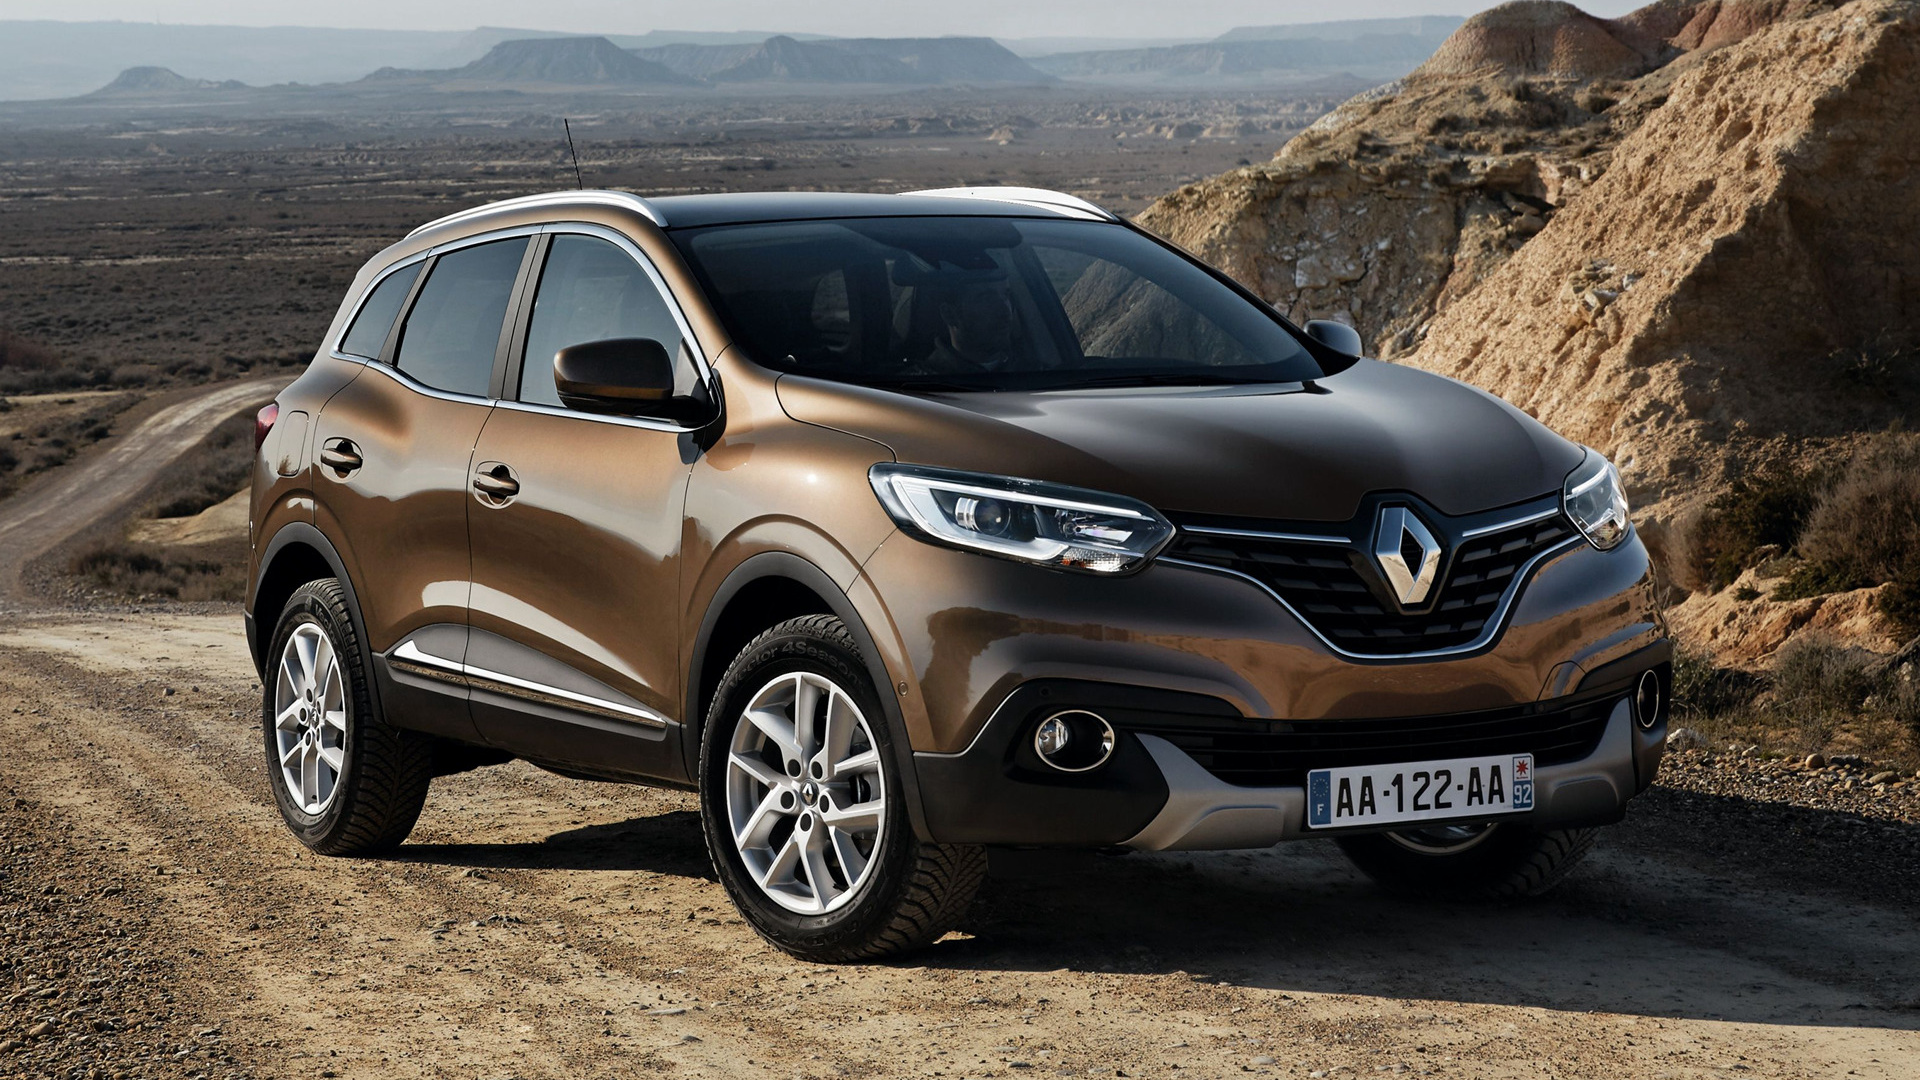 renault kadjar hd wallpapers. Black Bedroom Furniture Sets. Home Design Ideas